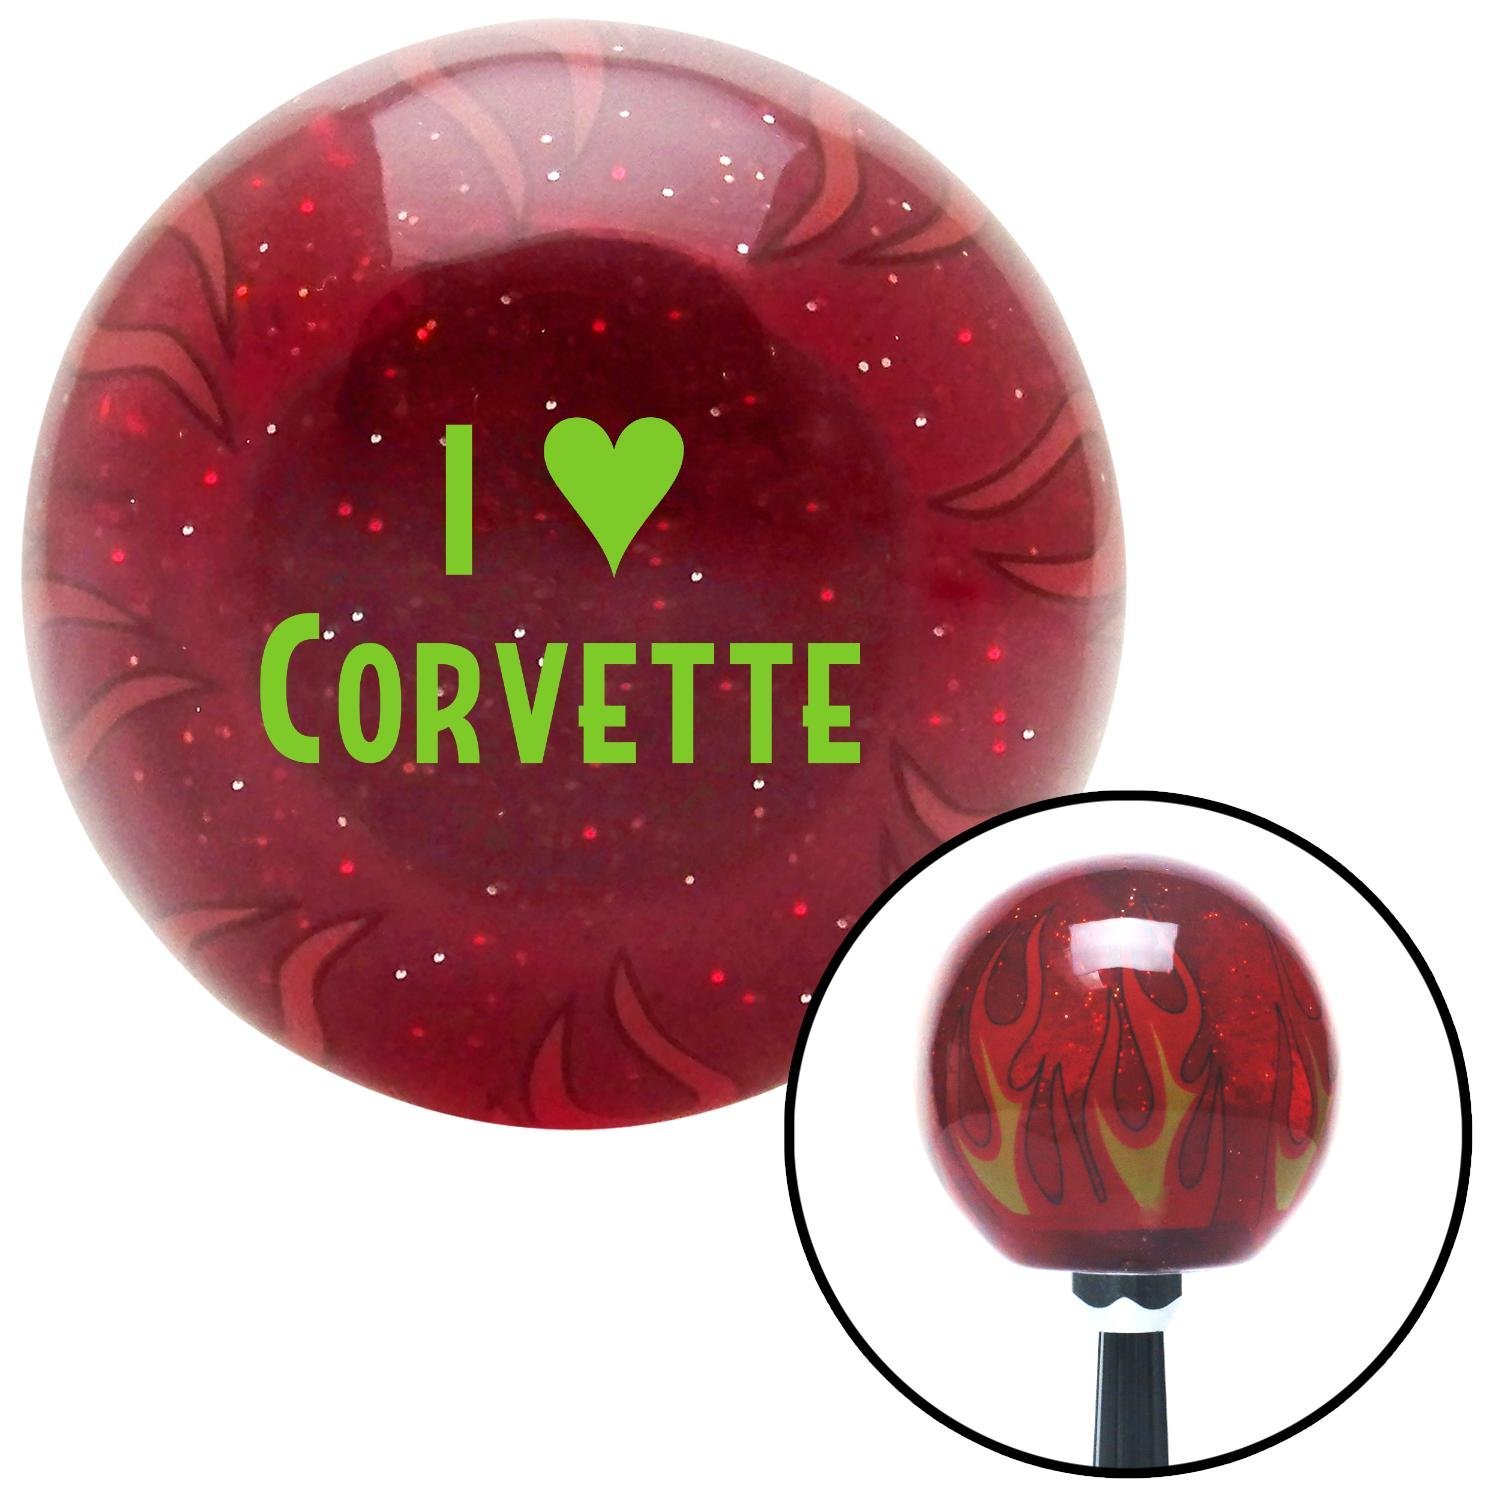 Green I 3 Corvette American Shifter 237299 Red Flame Metal Flake Shift Knob with M16 x 1.5 Insert